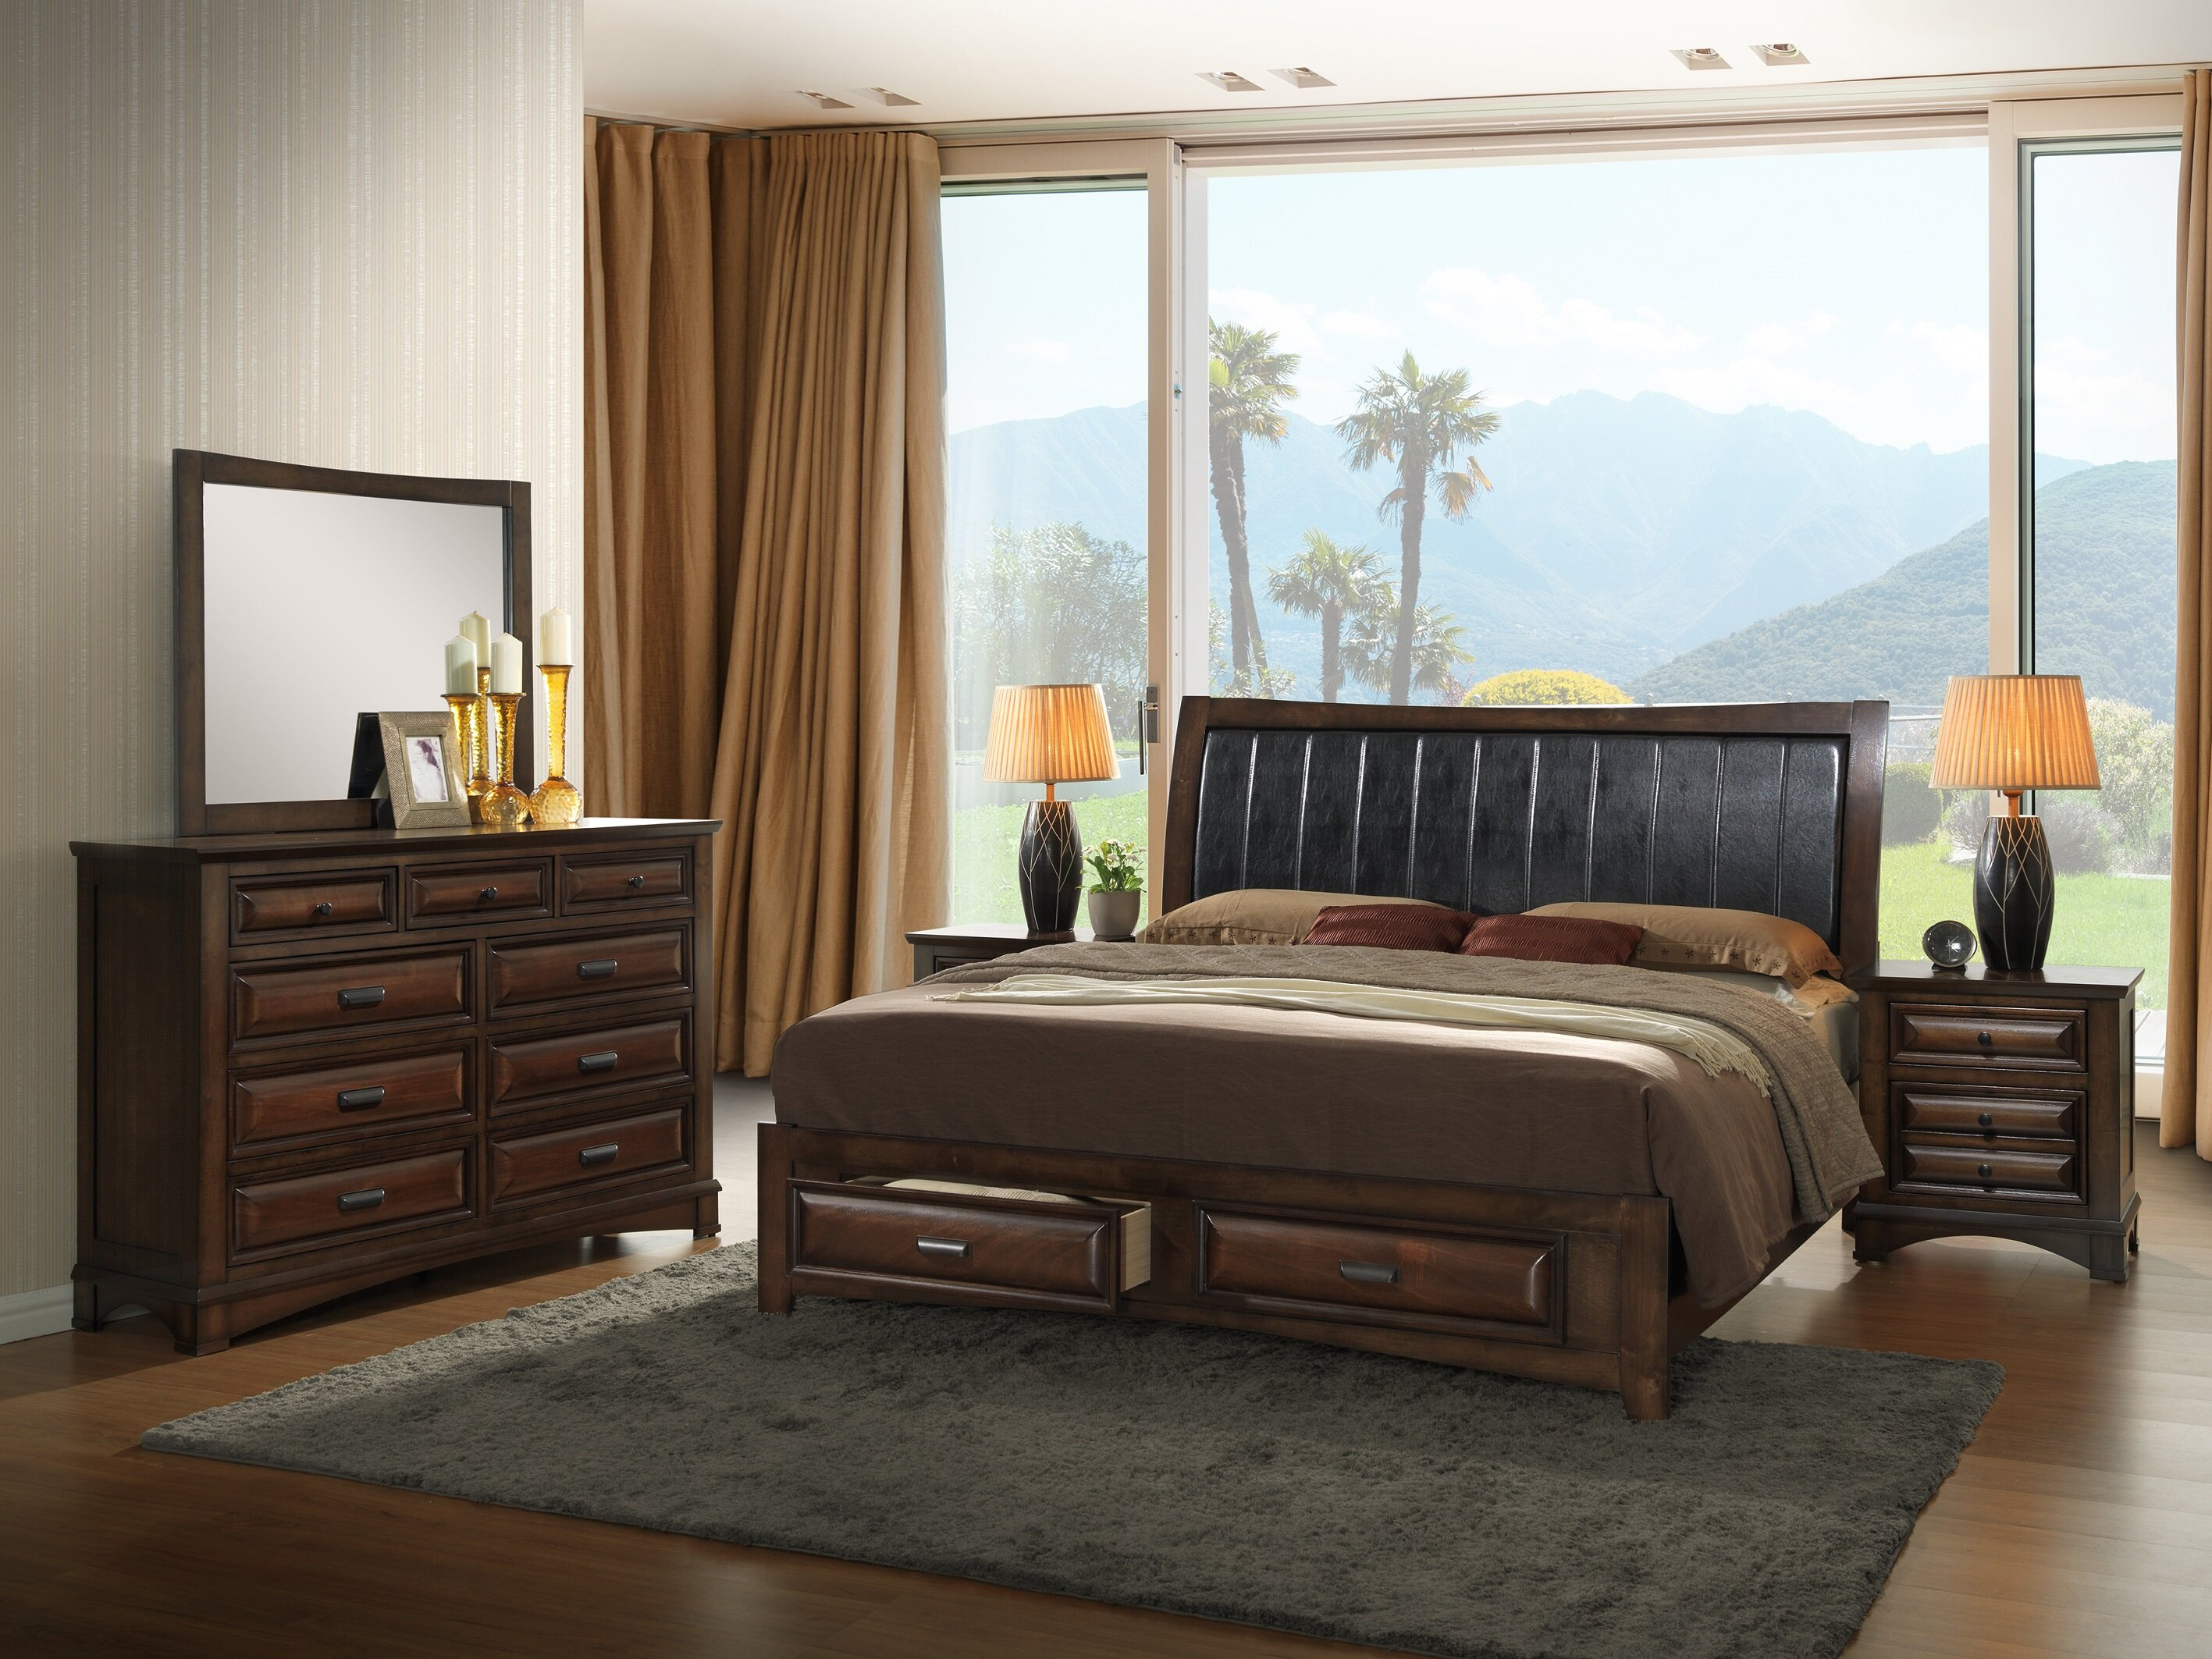 Charlton Home North Adams King Platform 5 Piece Bedroom Set | Wayfair